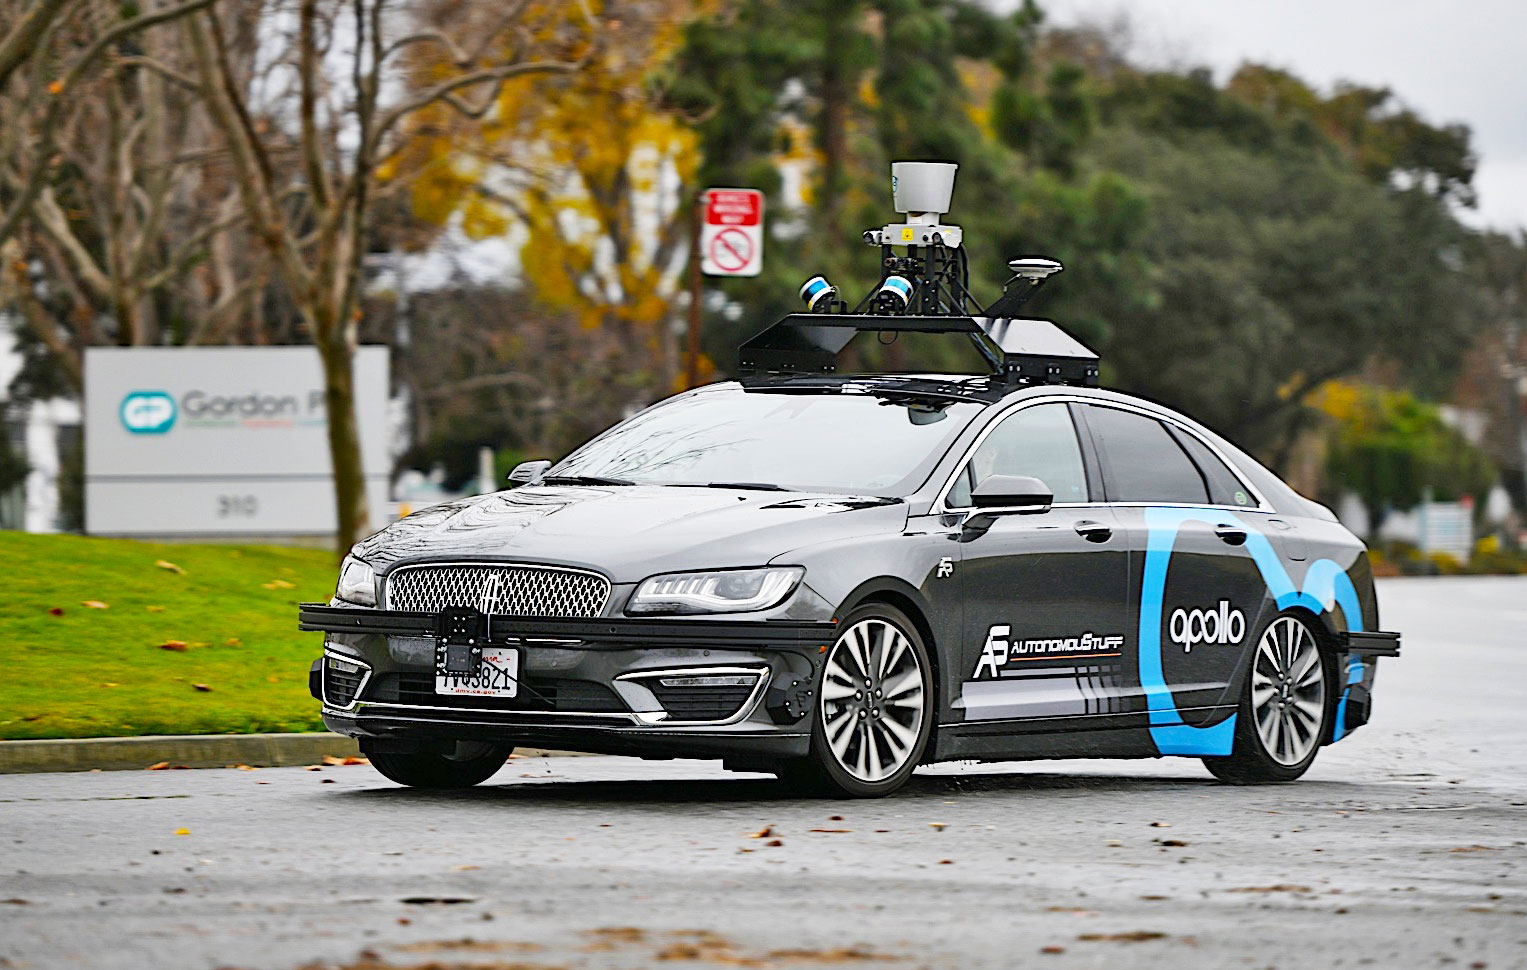 Baidu to Launch Self-Driving Food Delivery